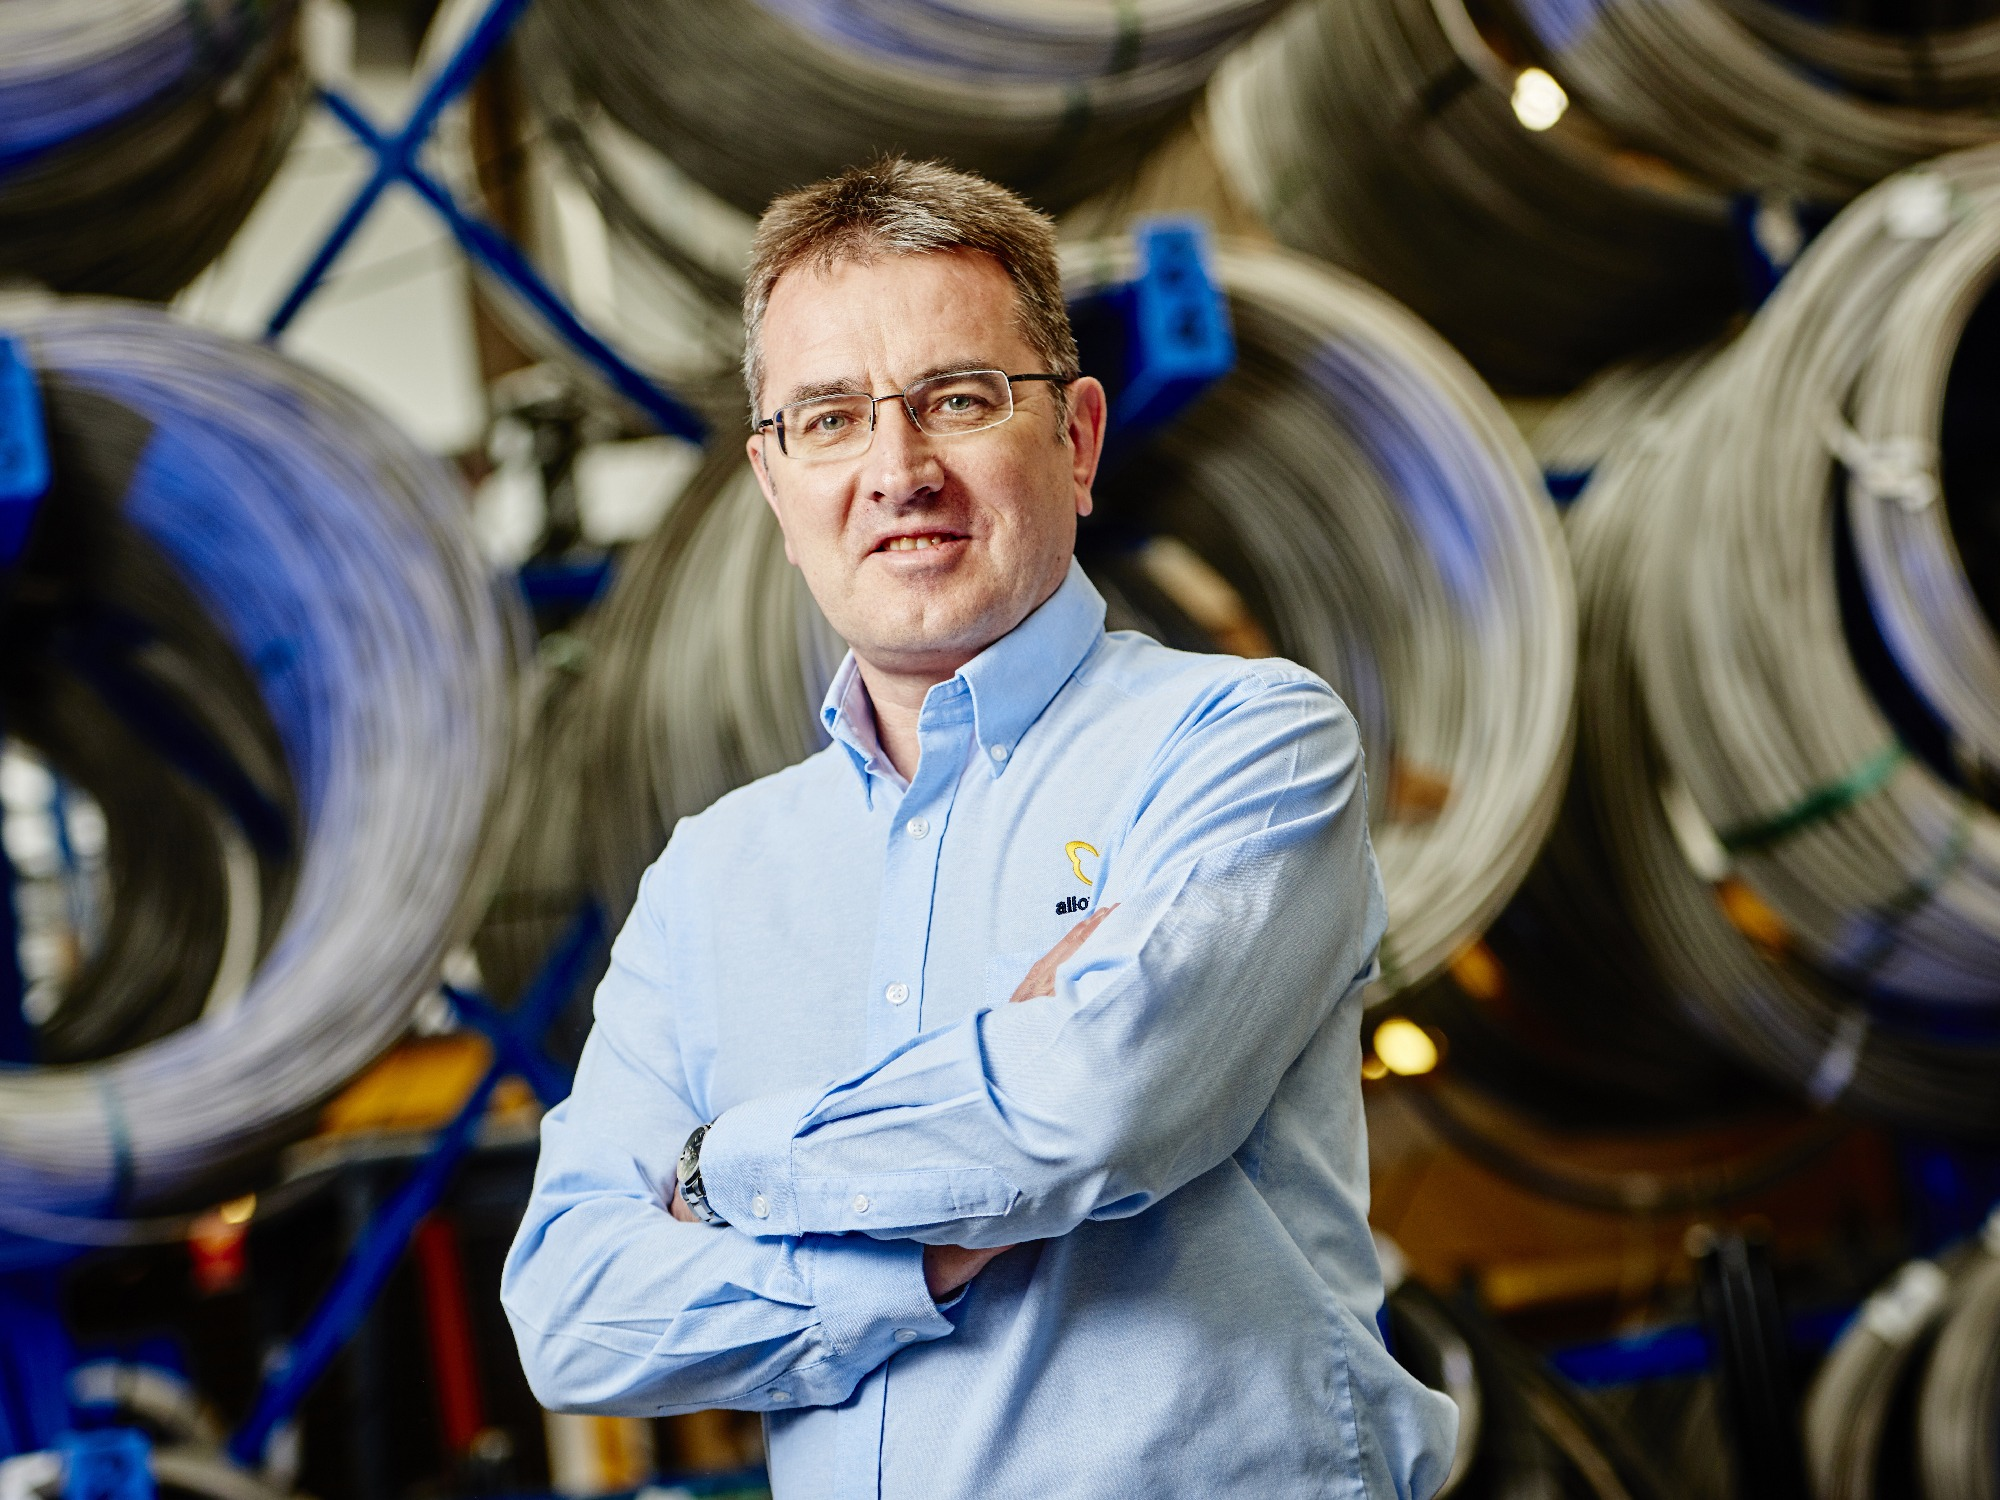 AWI The Times web pics Mark V Local touch keeps wire specialist going strong